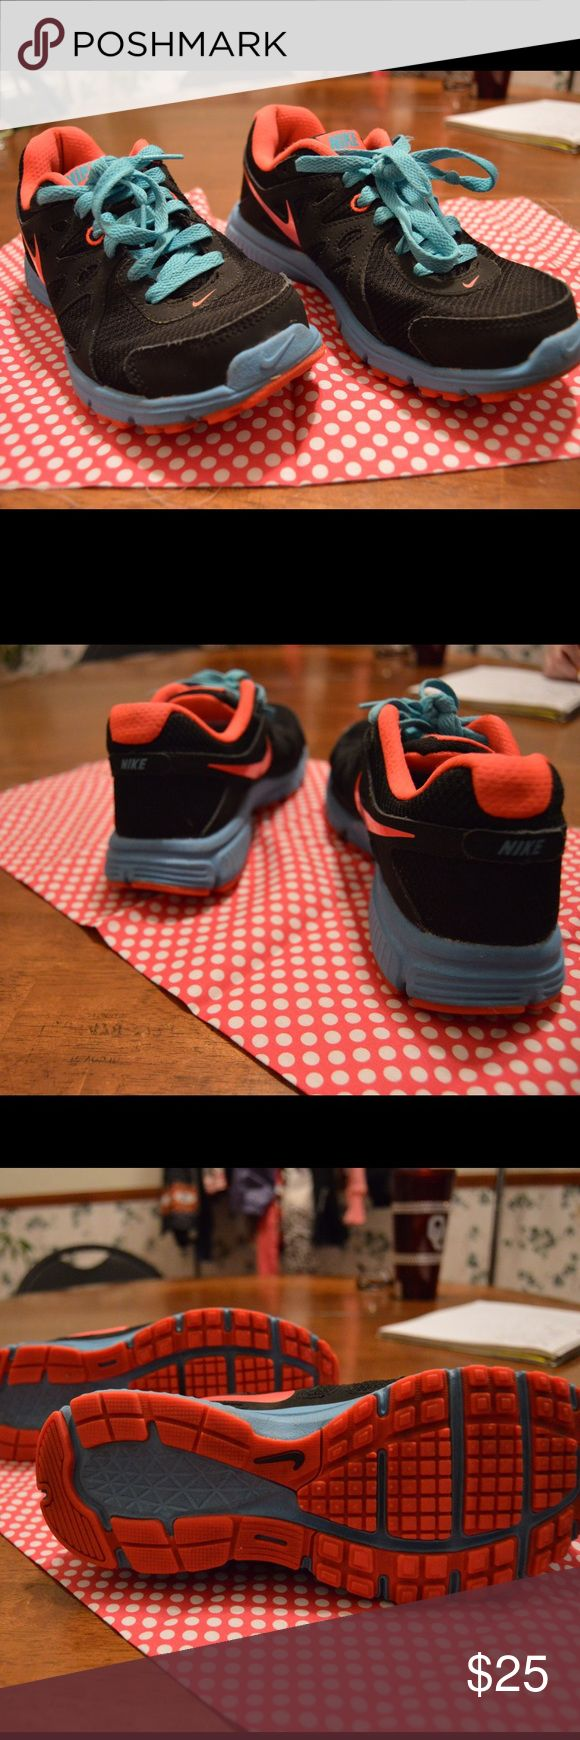 Ladies Nike shoes Nike Revolution 2, ladies. Size 6. Slightly worn. Black, pink and blue Nike Shoes Athletic Shoes